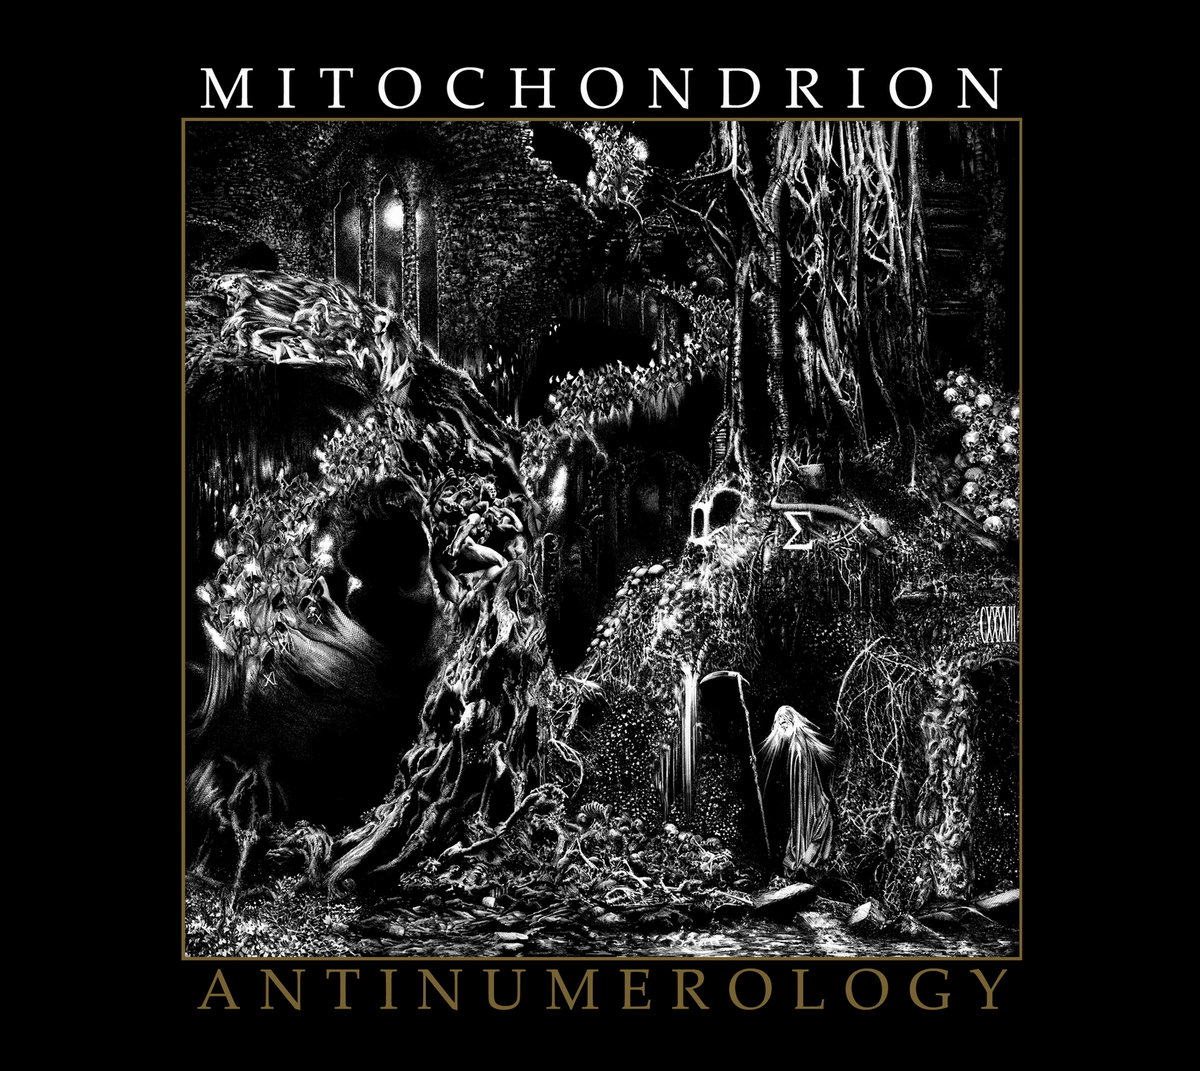 Mitochondrion - Antinumerology EP - CD Release Information & Stream.